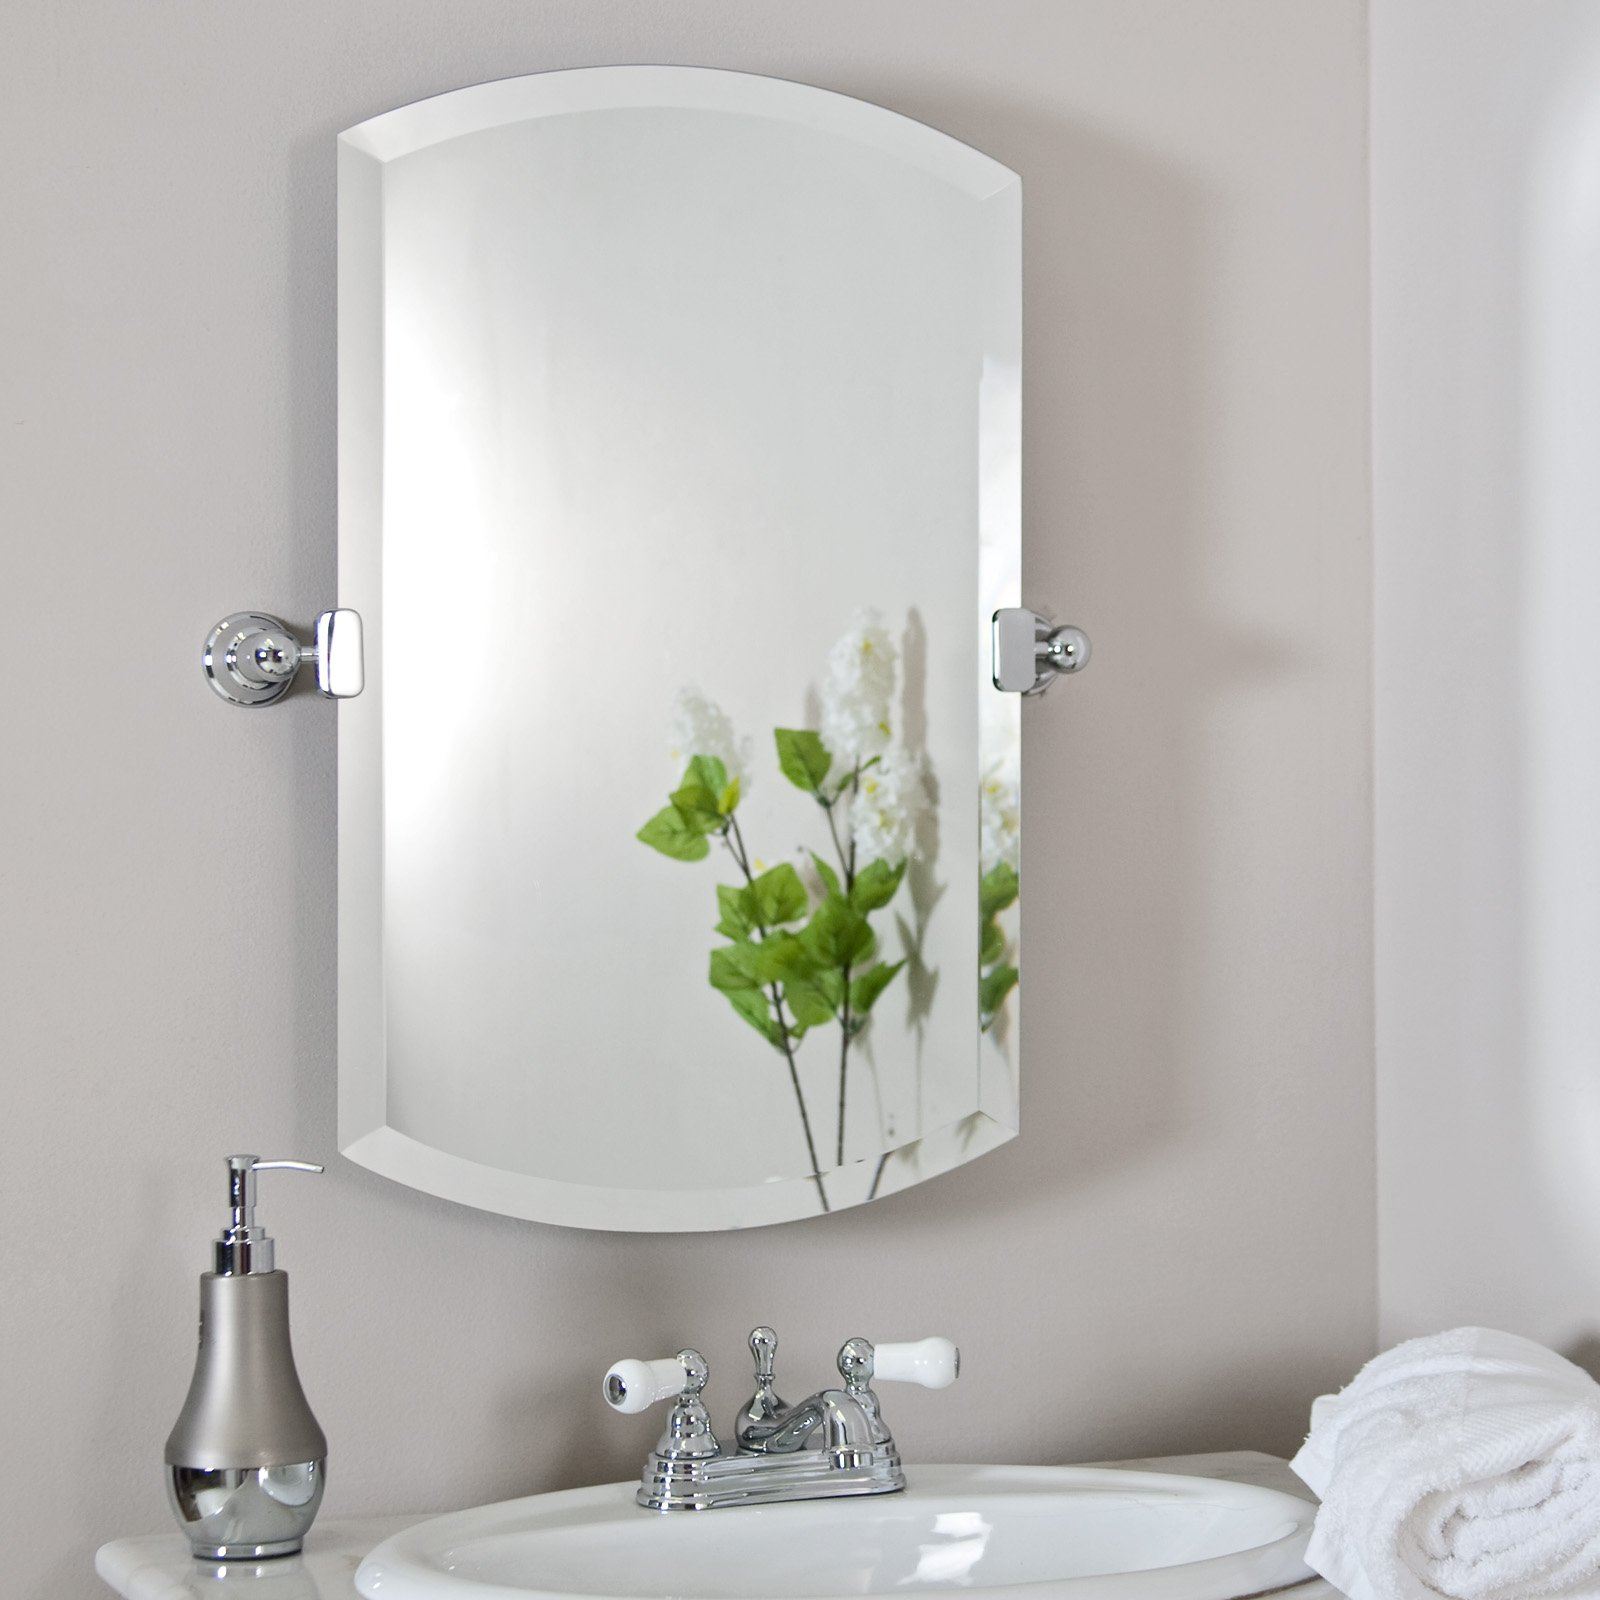 1600x1600px 4 Nice Bathroom Mirror Decorating Ideas Picture in Bathroom